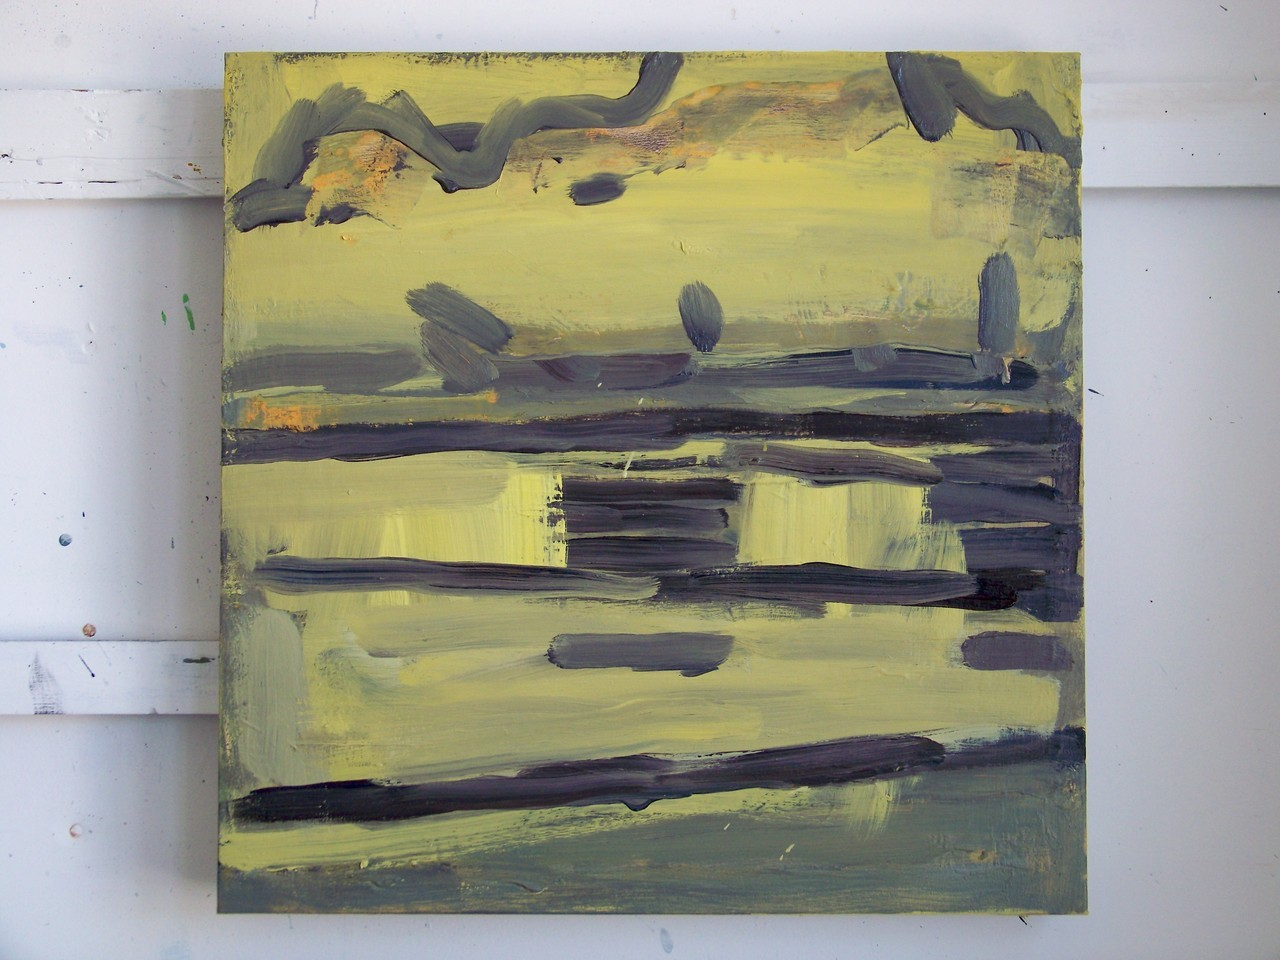 3rd August 2012. One of the paintings that I have been working on this week, based on drawings made a few days agoof a spectacular bank of clouds over the sea at dusk .